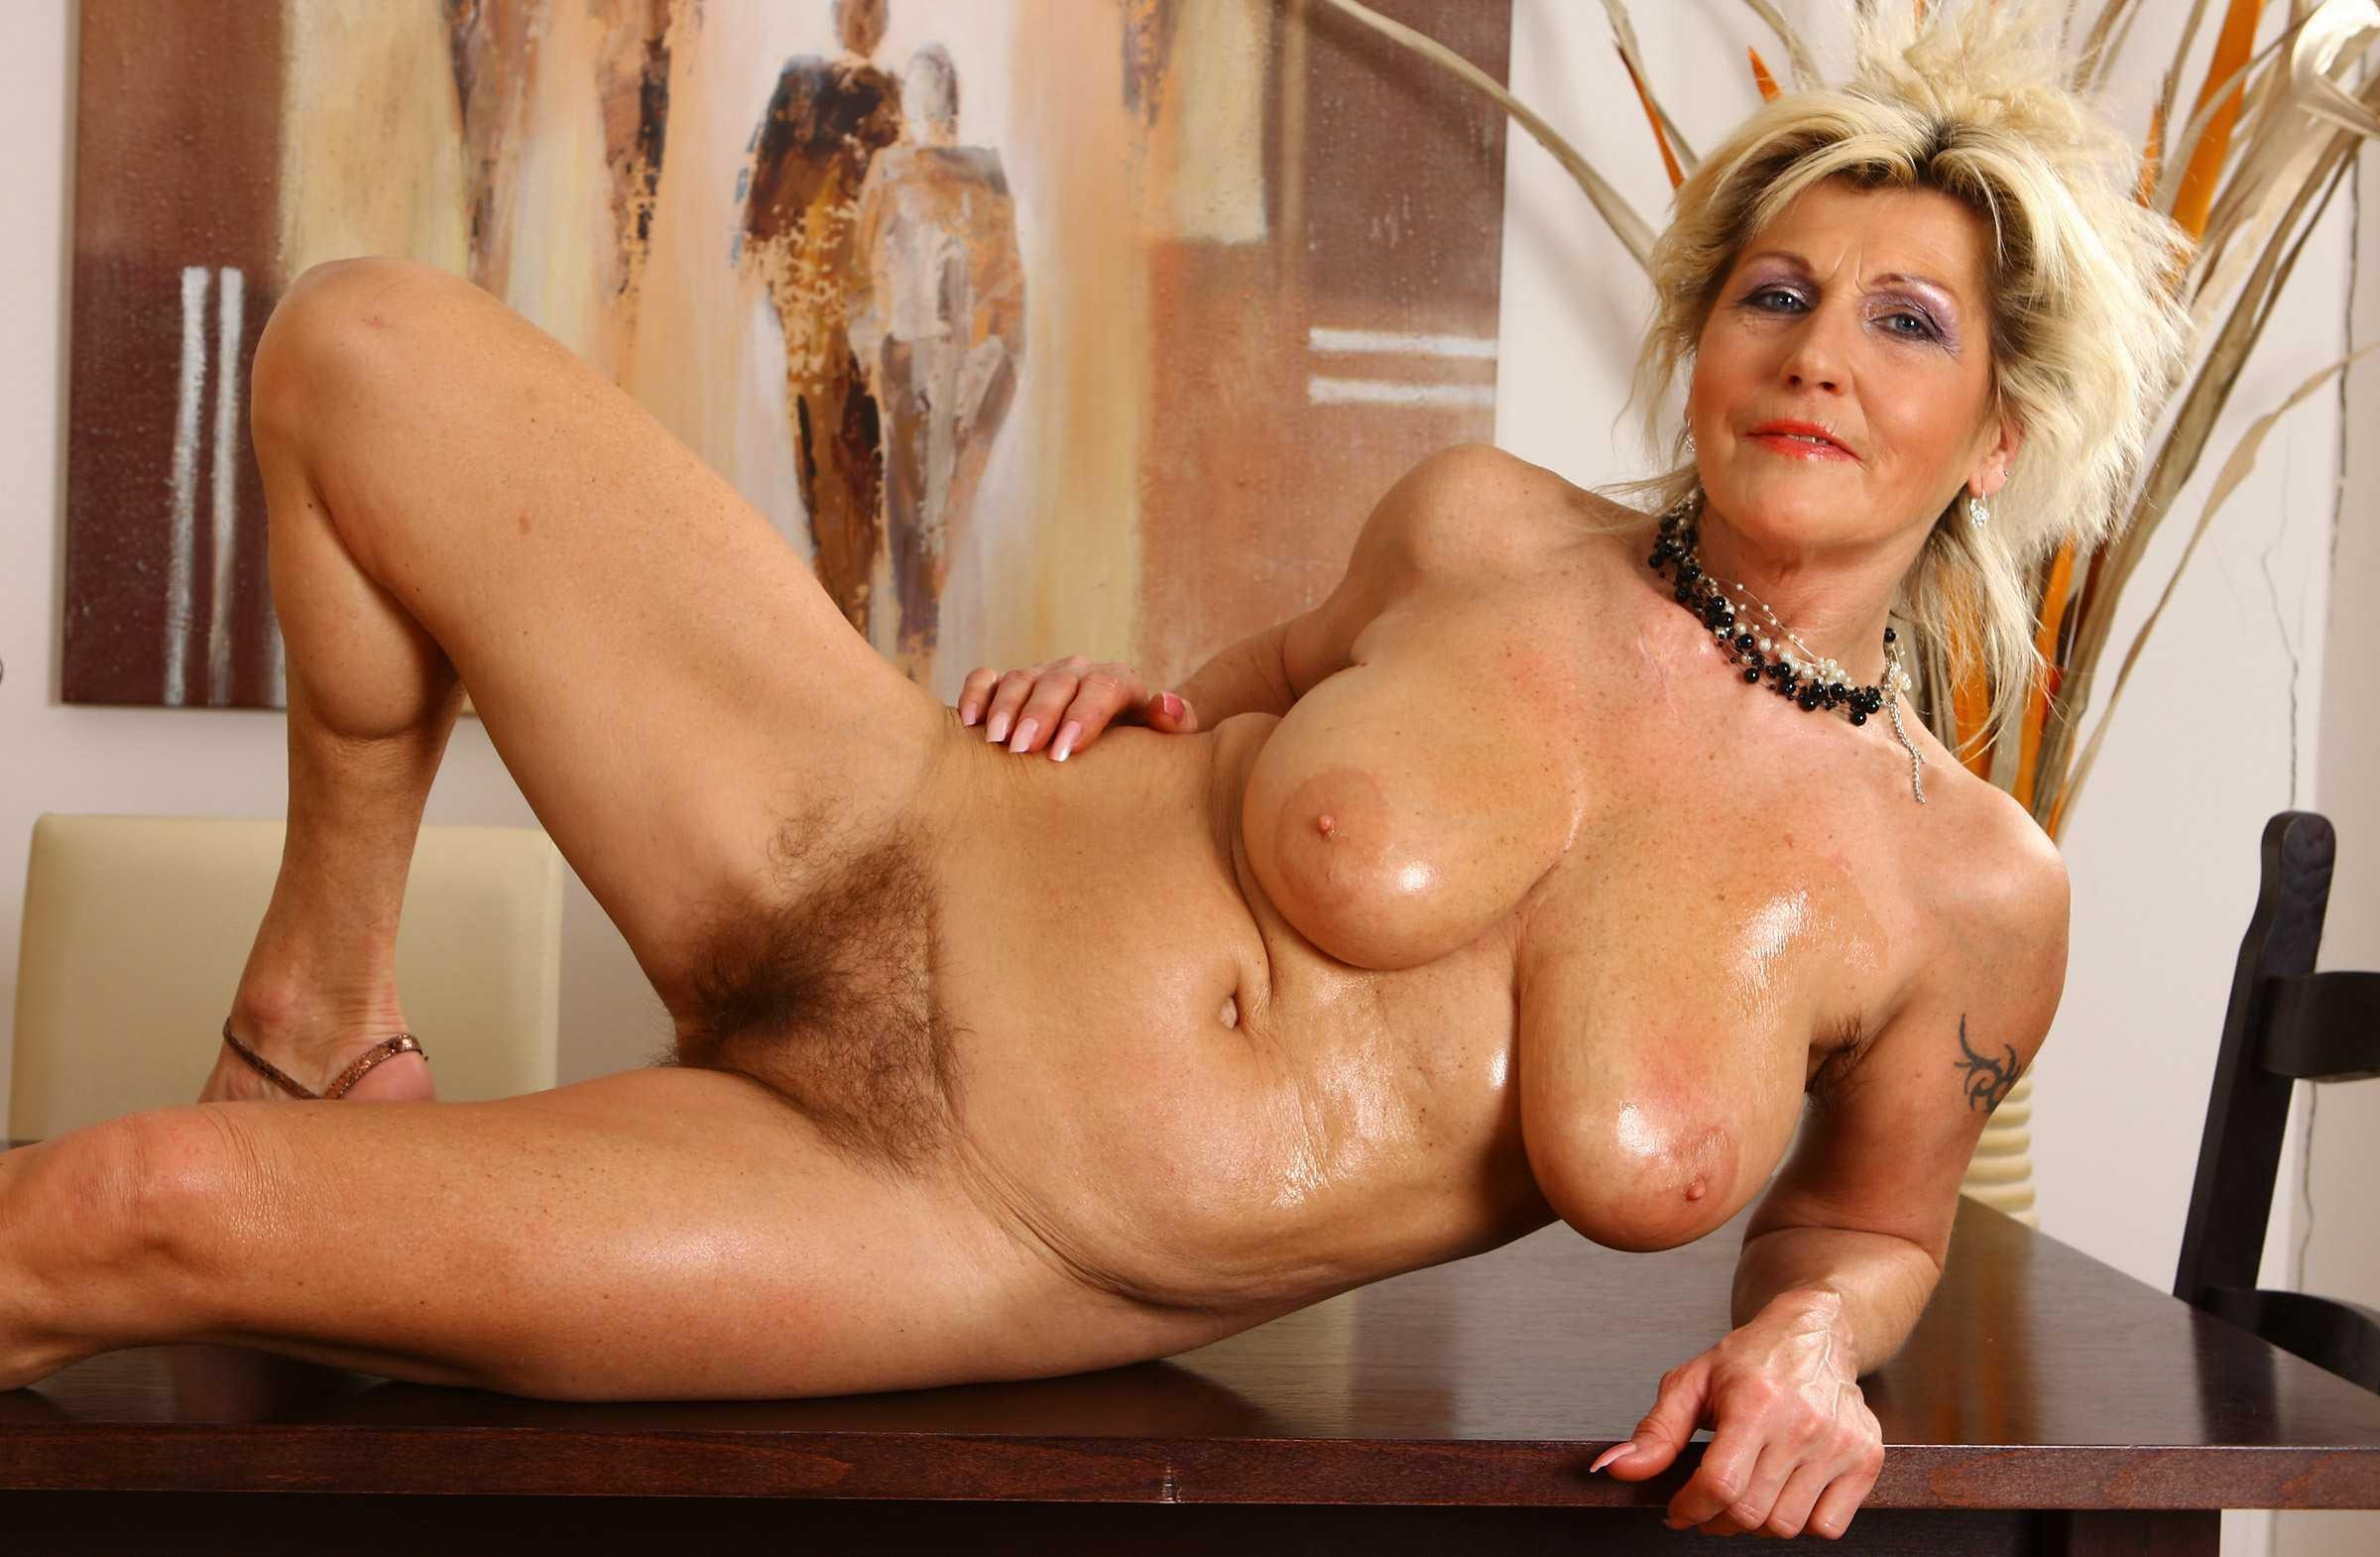 Right! big boob lady older sex thank